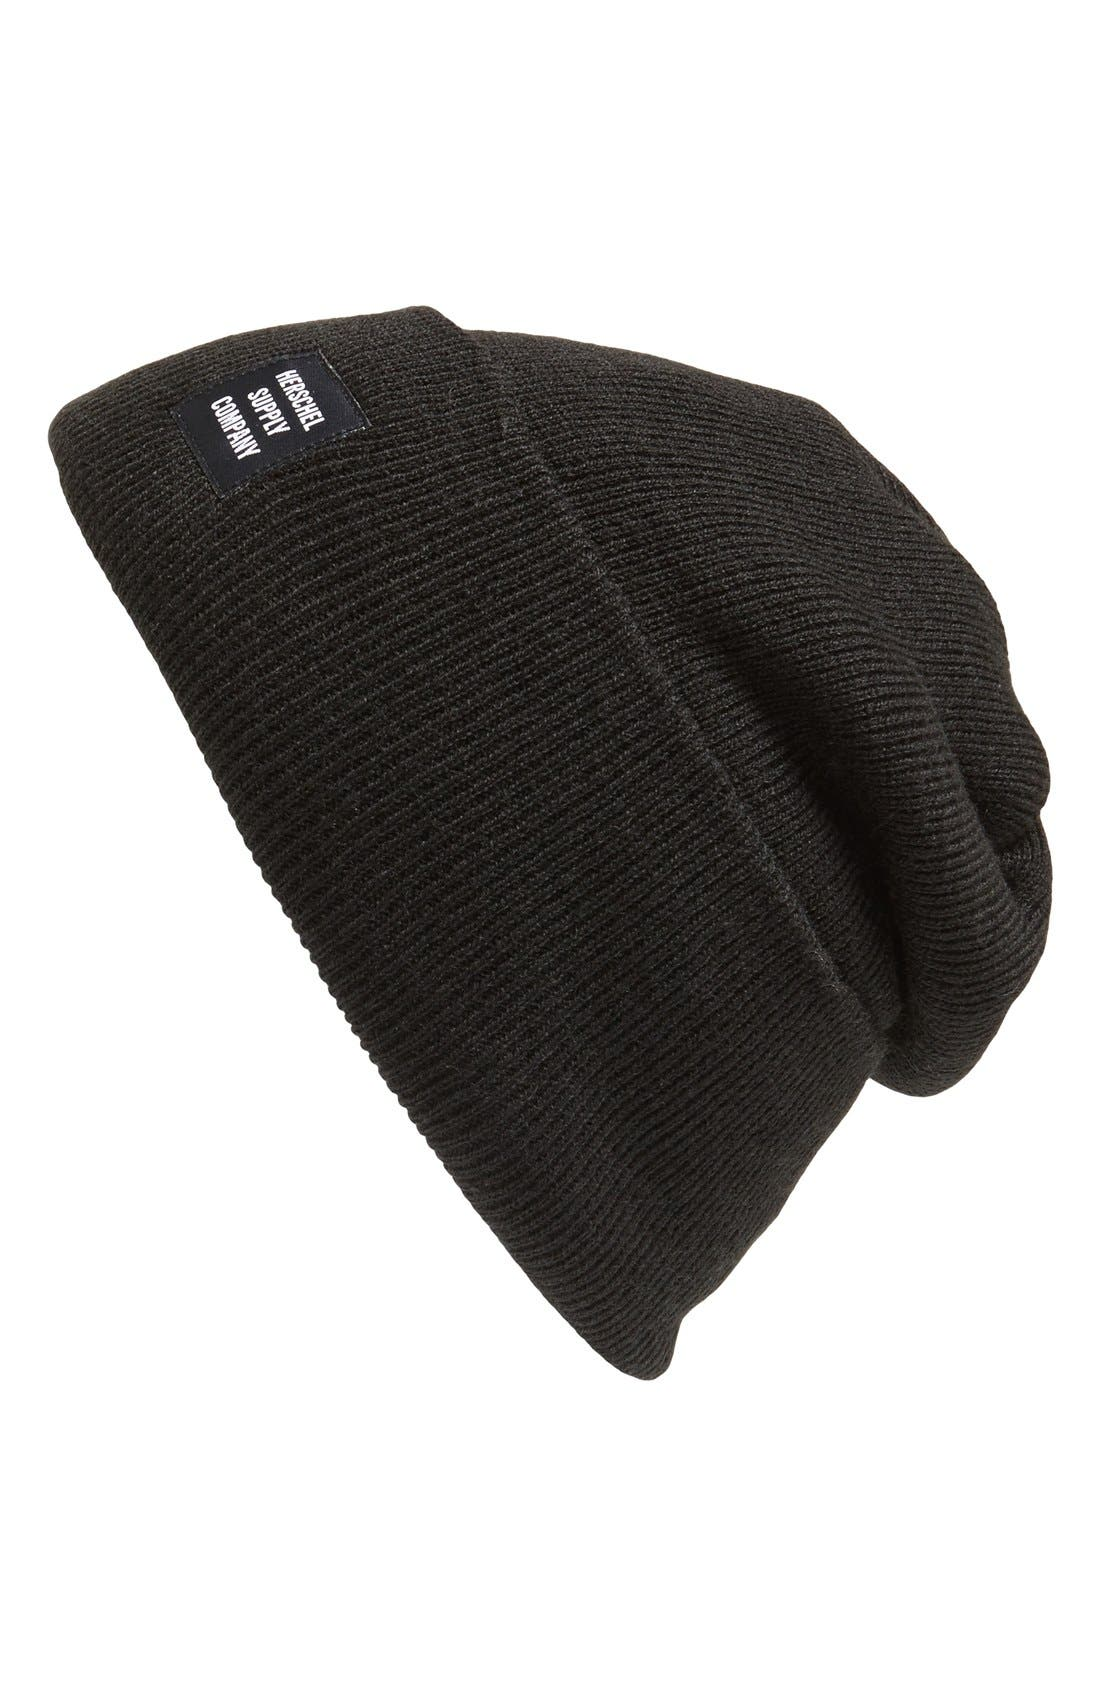 Alternate Image 1 Selected - Herschel Supply Co. 'Abbott' Knit Cap